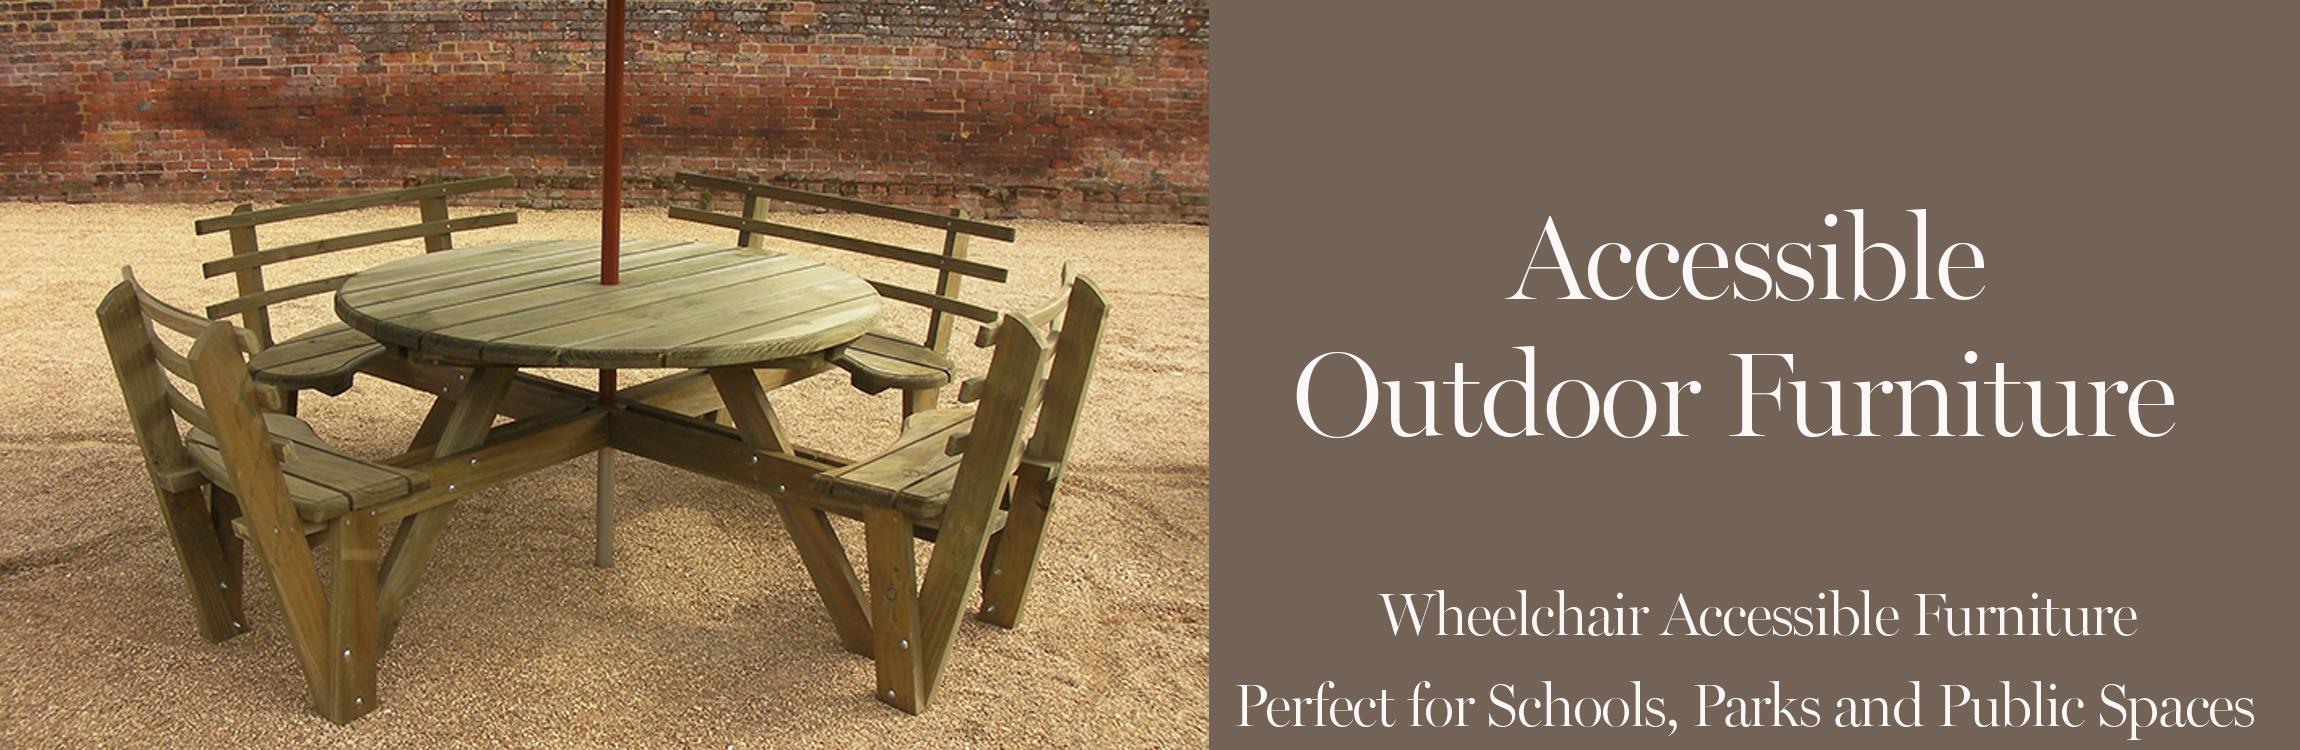 Accessible Outdoor Furniture